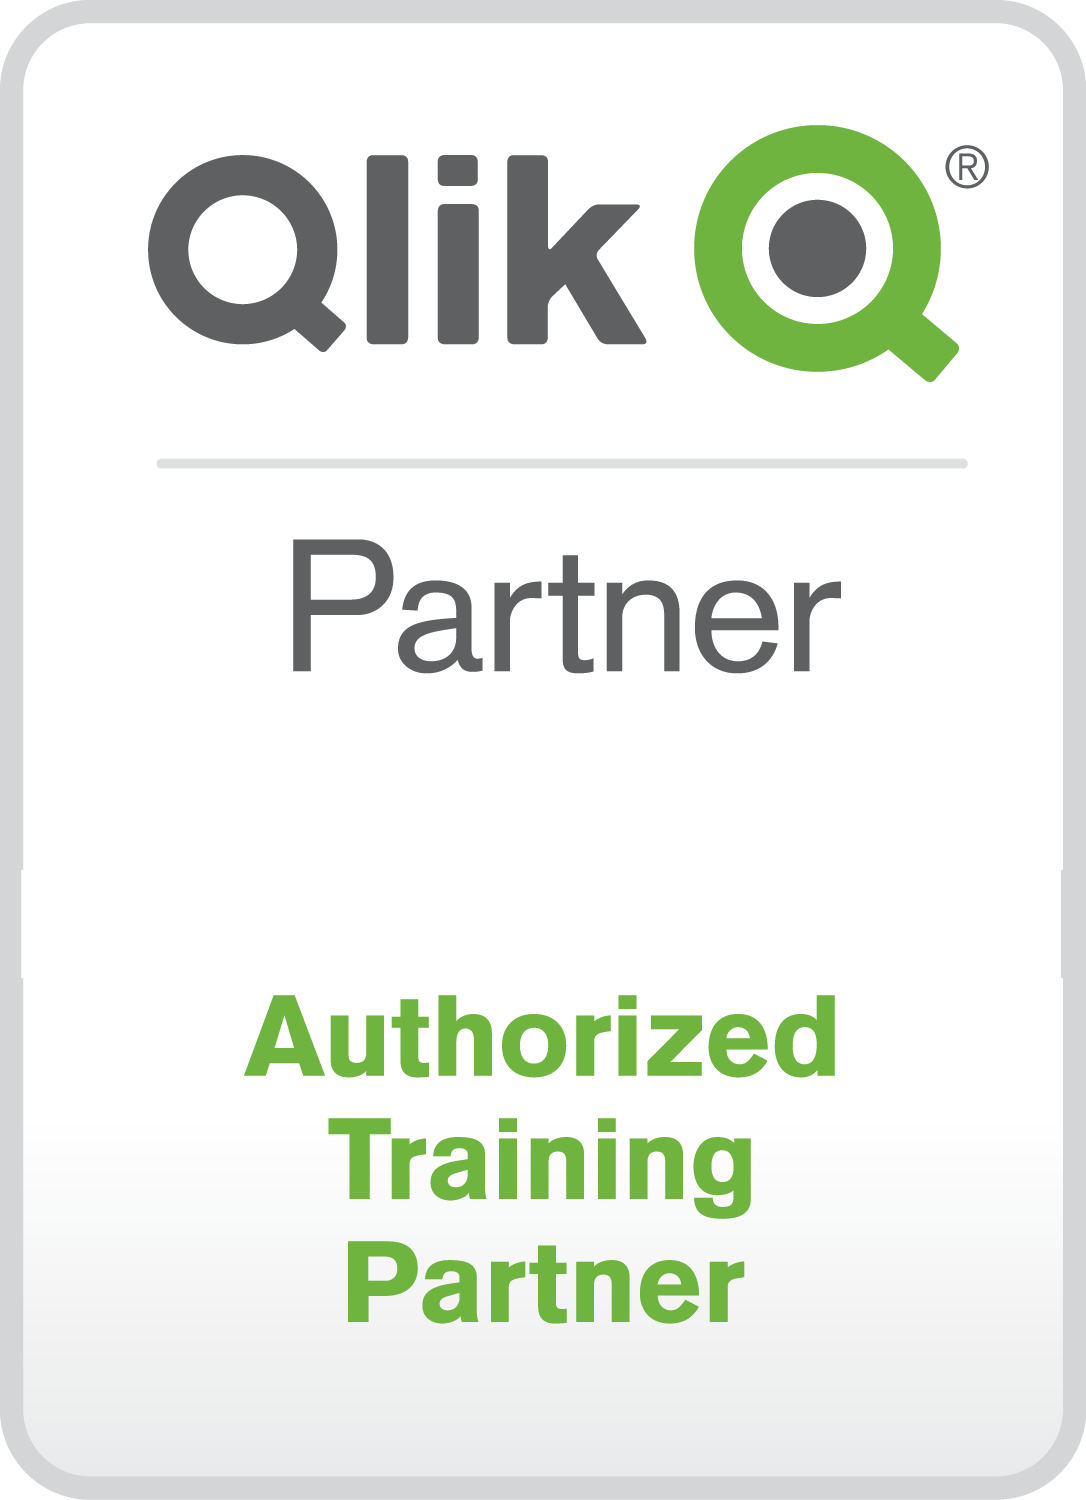 Qlik-Partner-Tile_AuthorizedTrainingPartner1